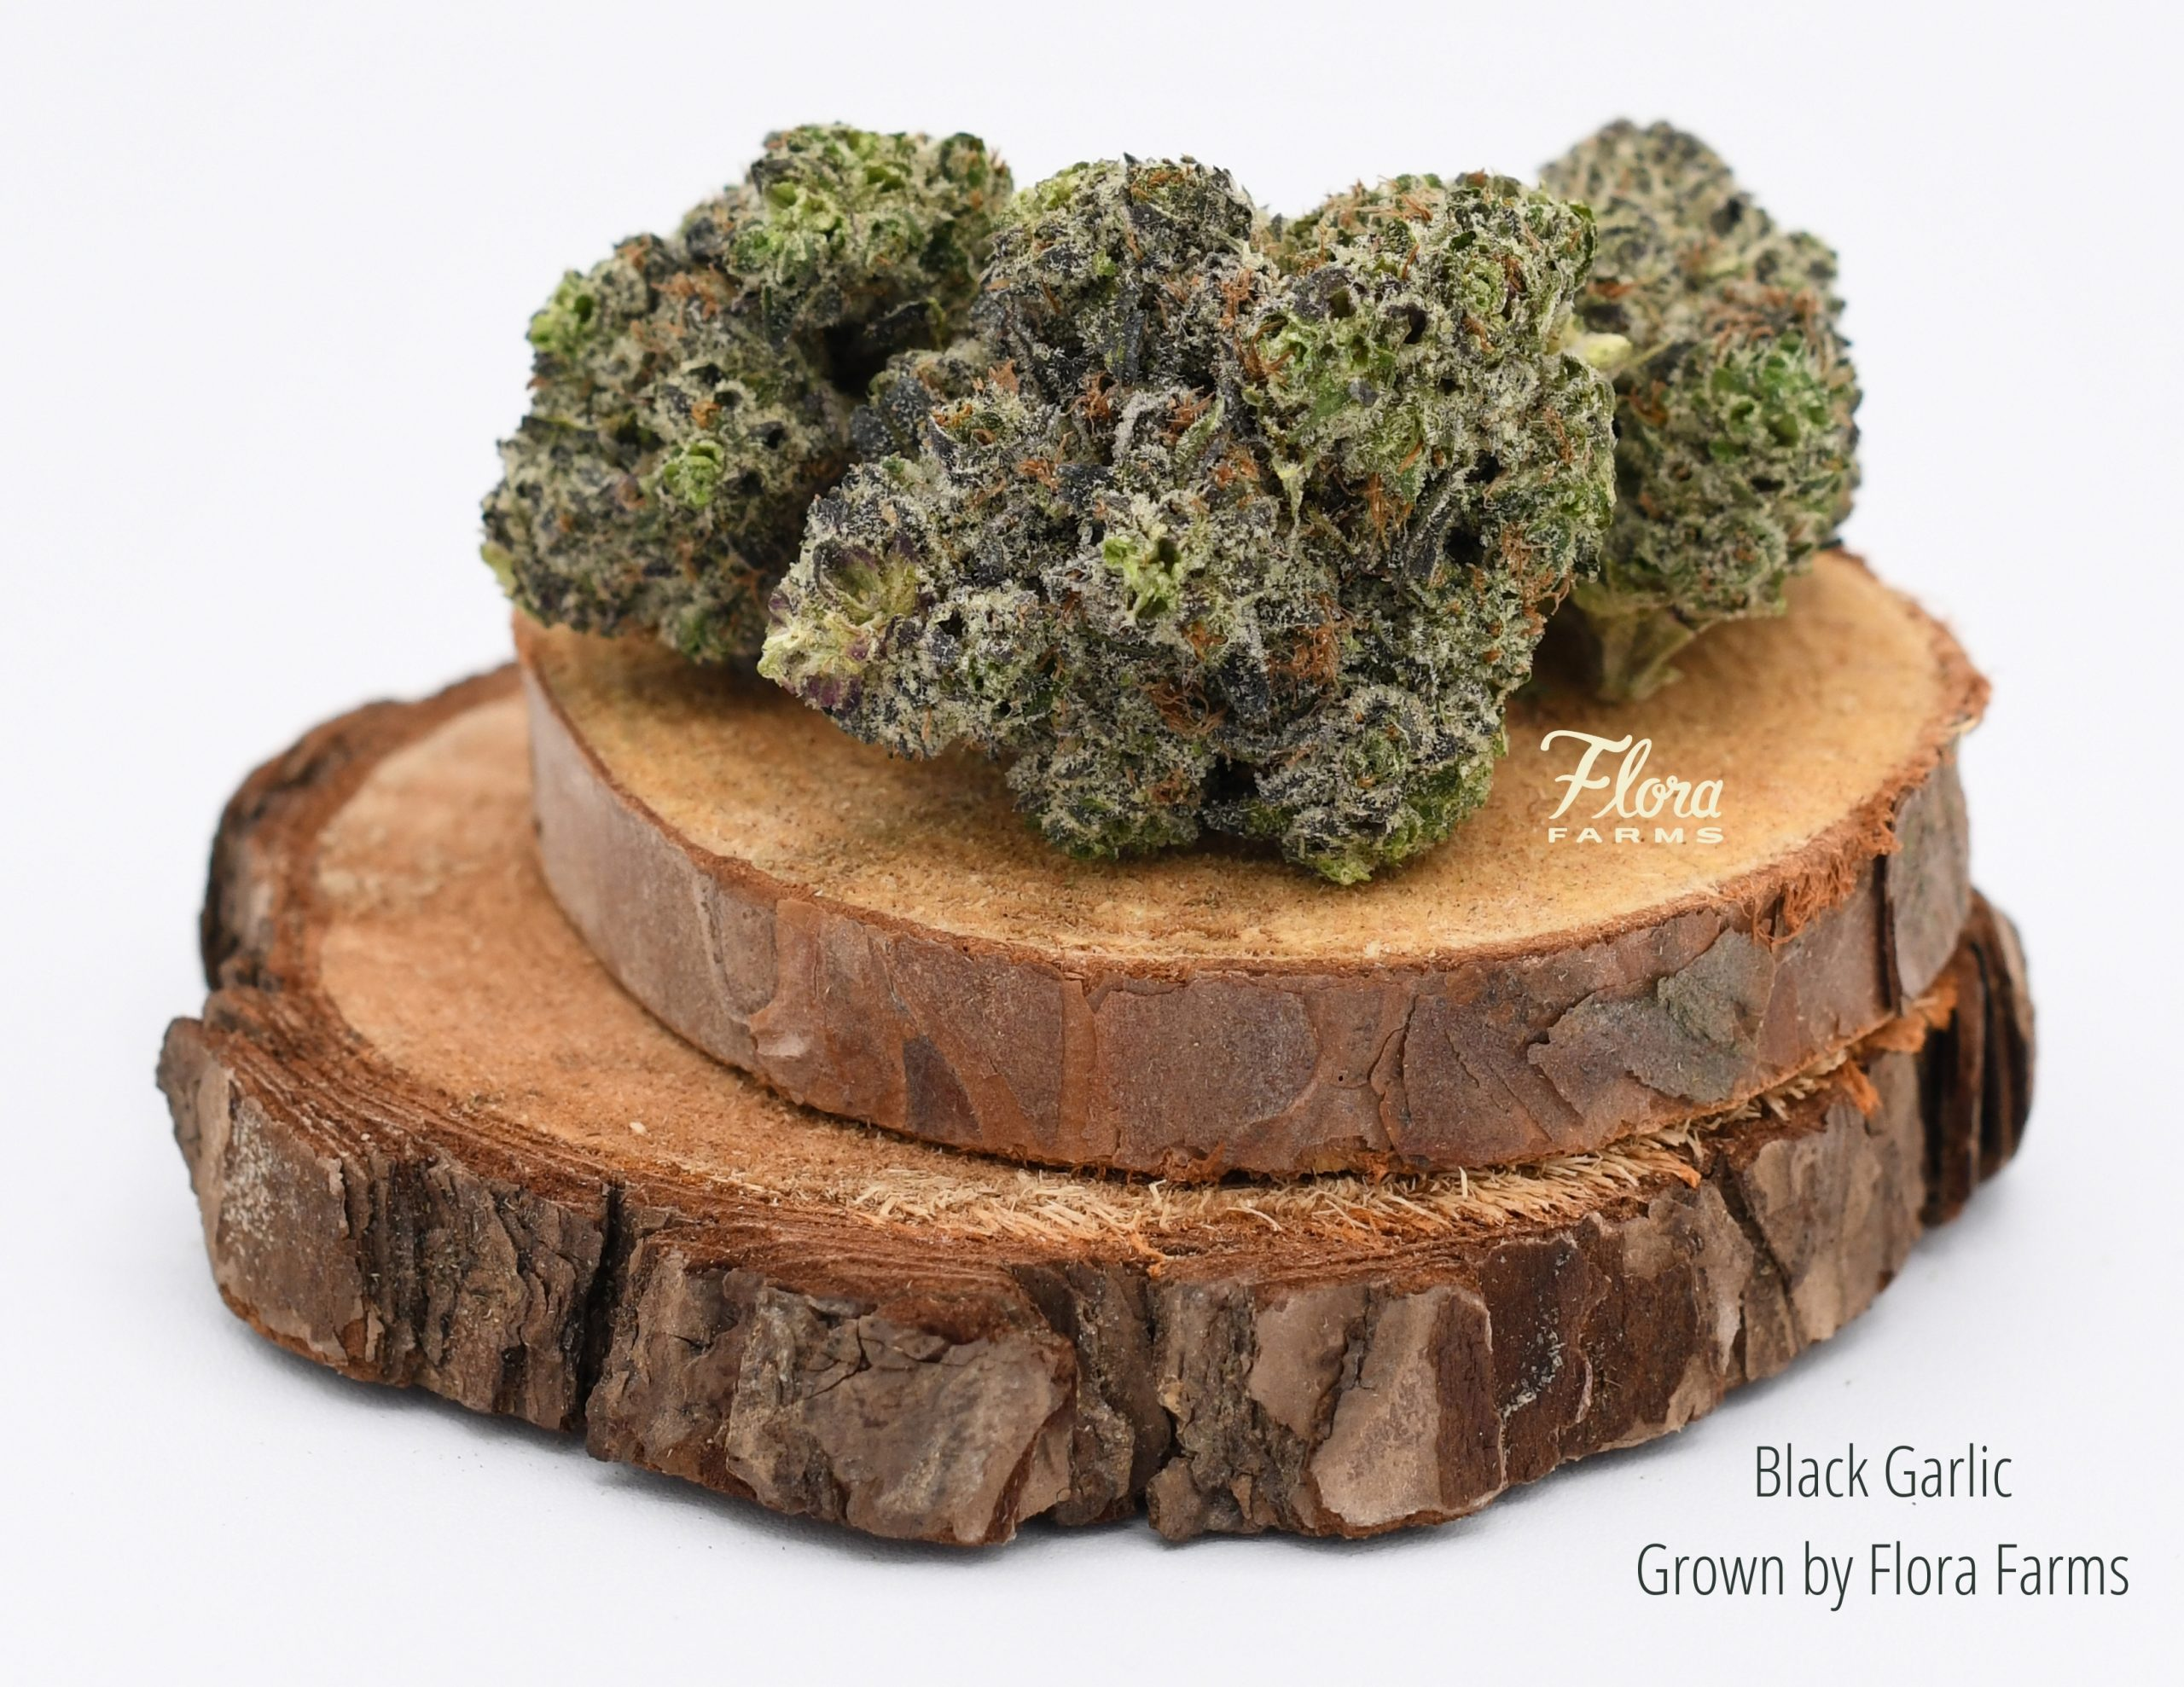 Black Garlic nugs staged on two wood disks grown by Flora Farms